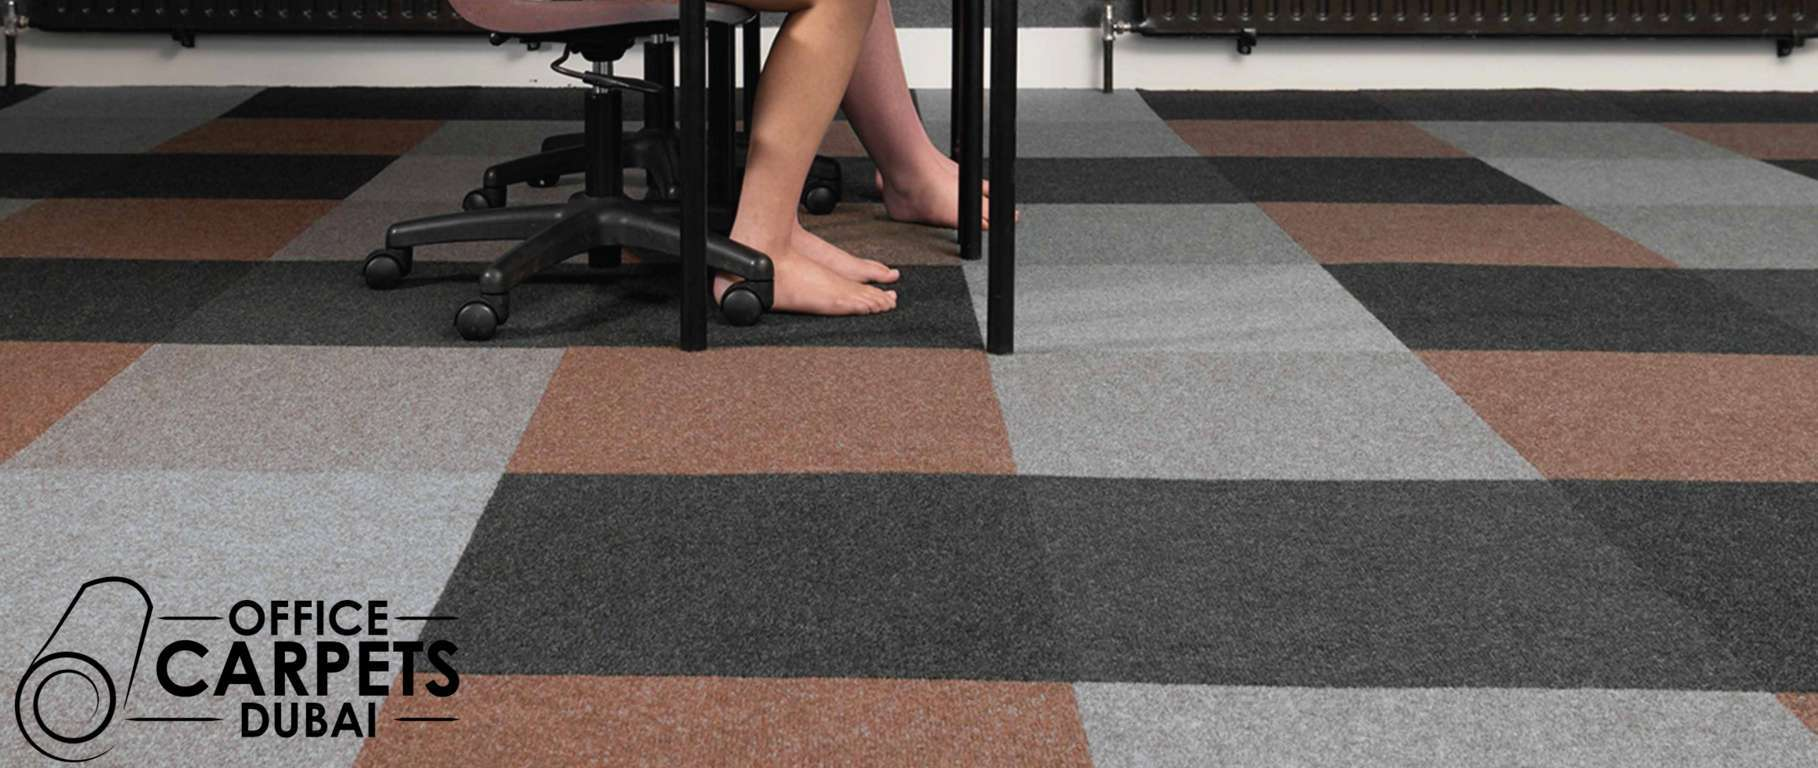 Office Carpets Tiles Installation In Dubai Carpet Supplier In Dubai